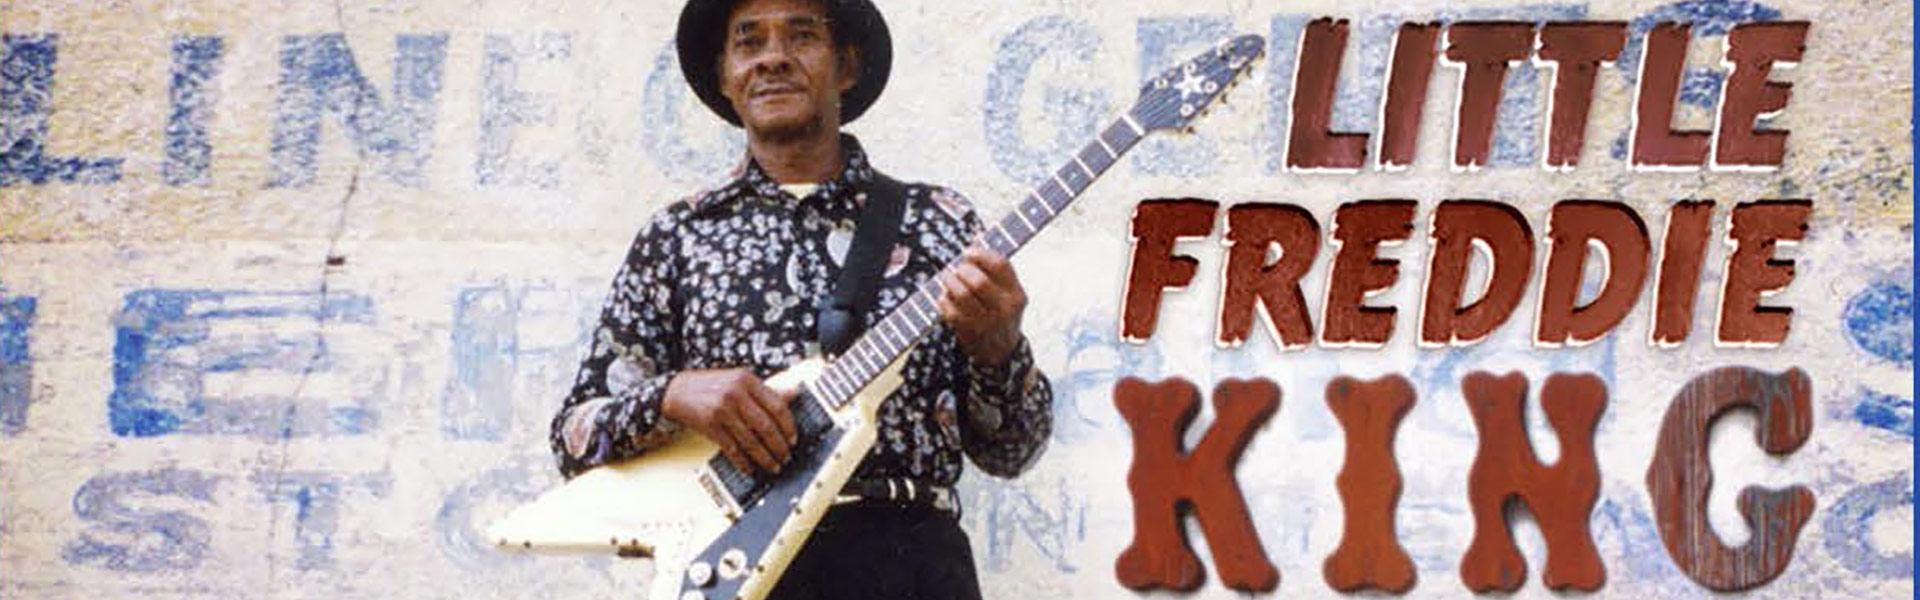 Little Freddie King – Fried Rice & Chicken